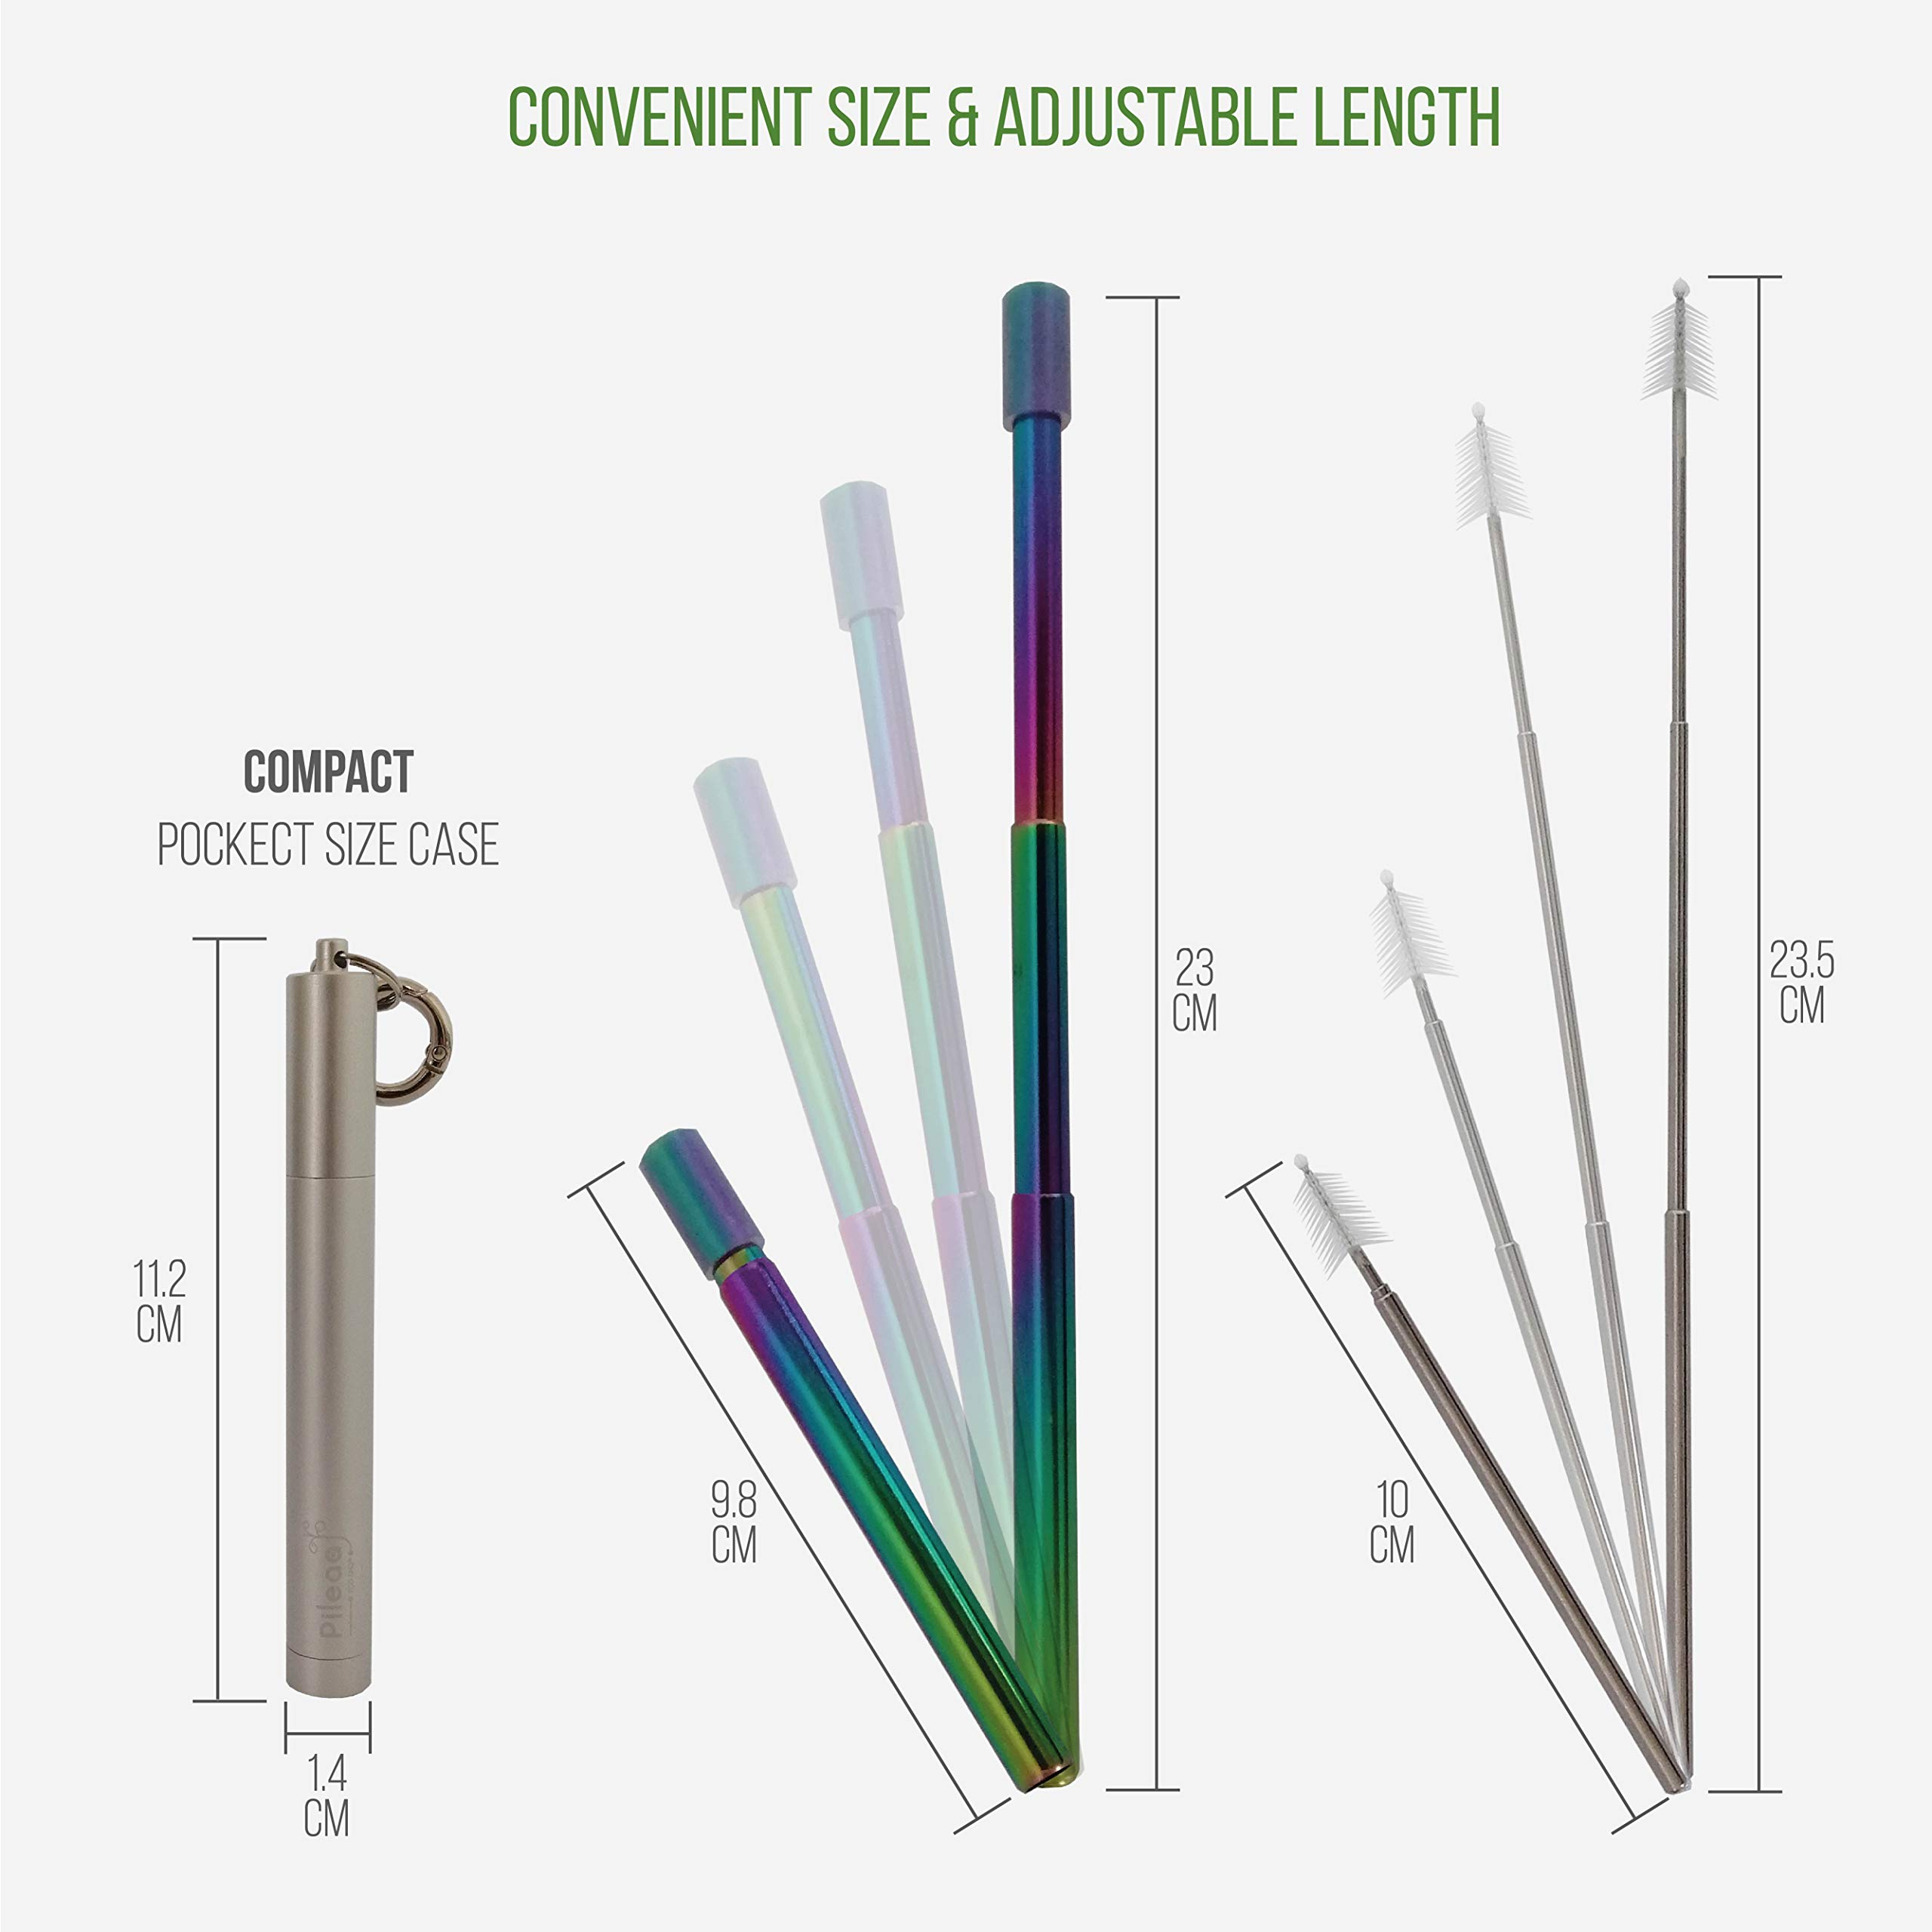 Pileaa Stainless Steel Straw with case, Rainbow Reusable Metal Straw, Retractable Telescopic Straw, Travel Portable Straw with Brush, Pocket Straws, Zero Waste Products, Silver